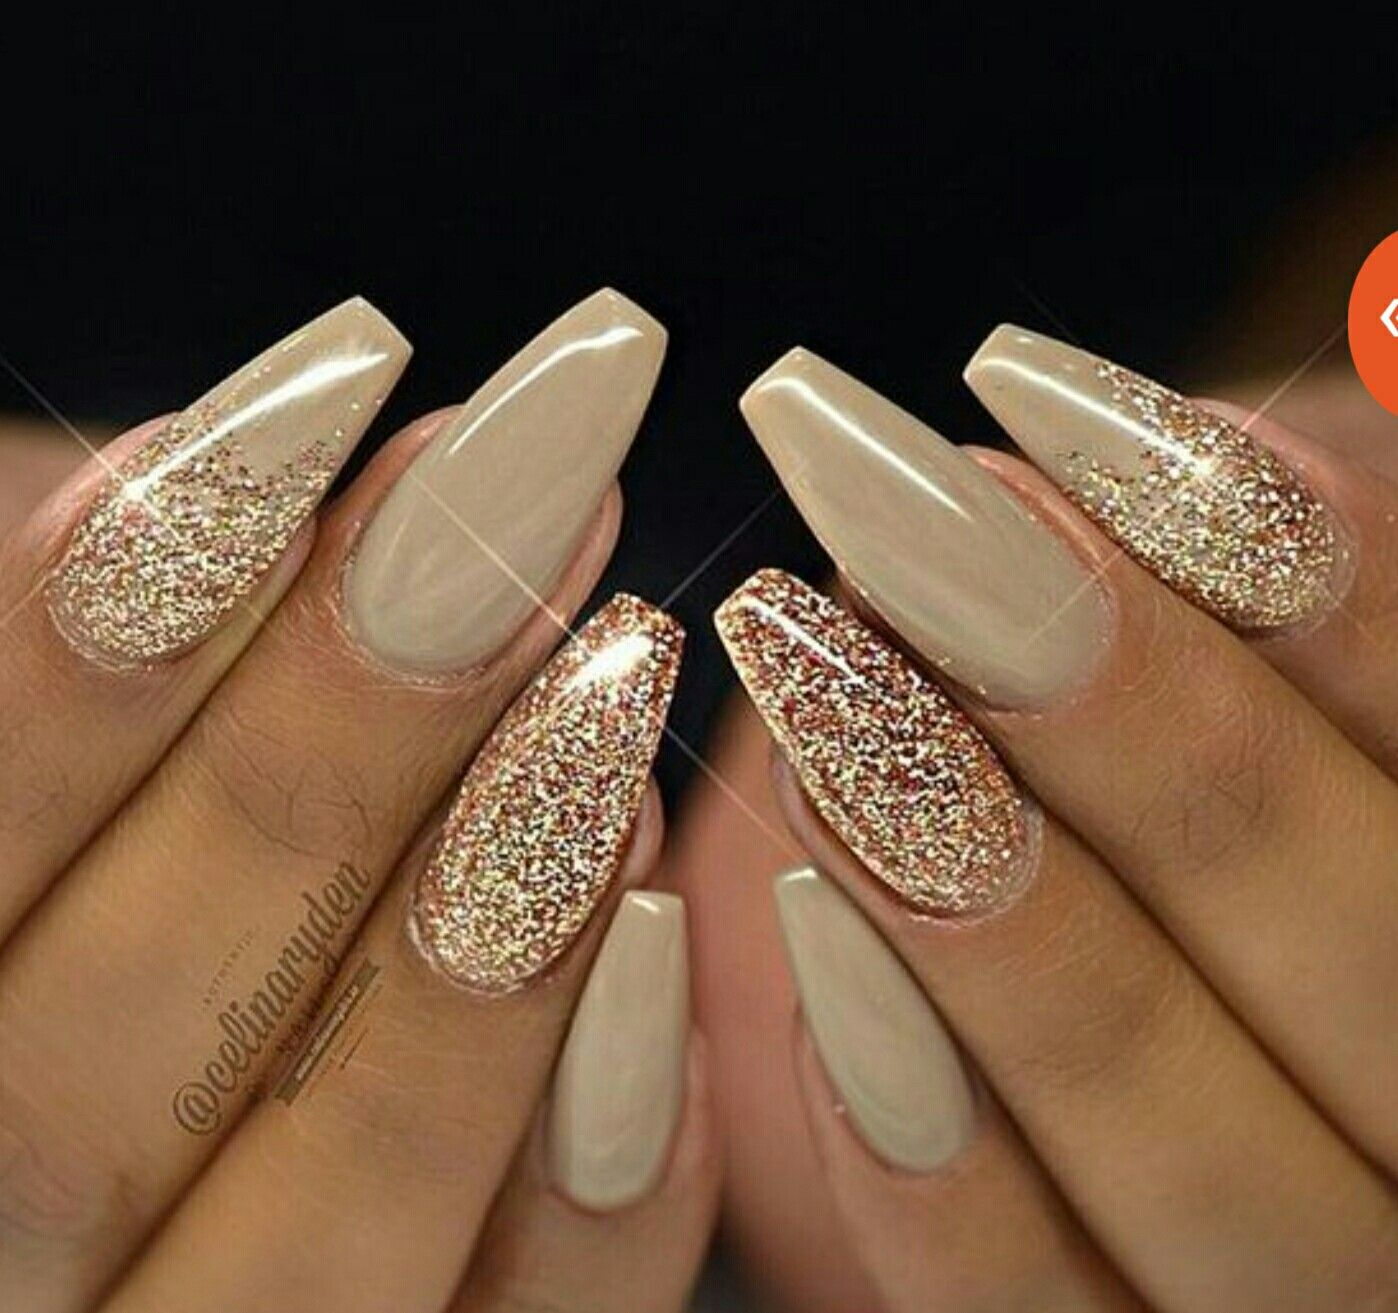 Pin von Courteney Greer auf gold~nude nail polish | Pinterest ...